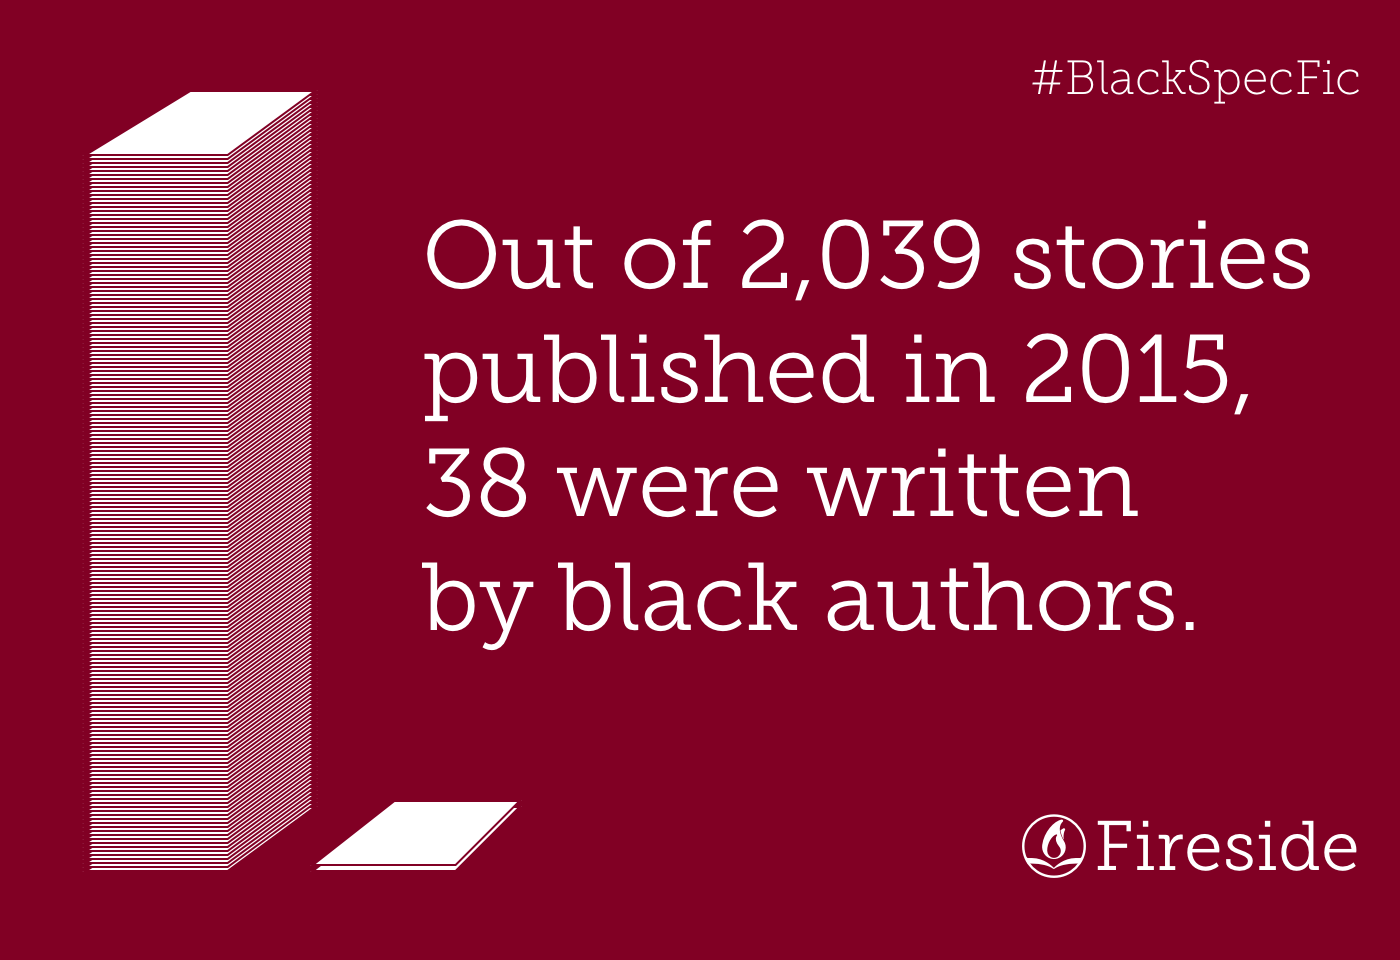 Out of 2,039 stories published in 2015, 38 were written by black authors.